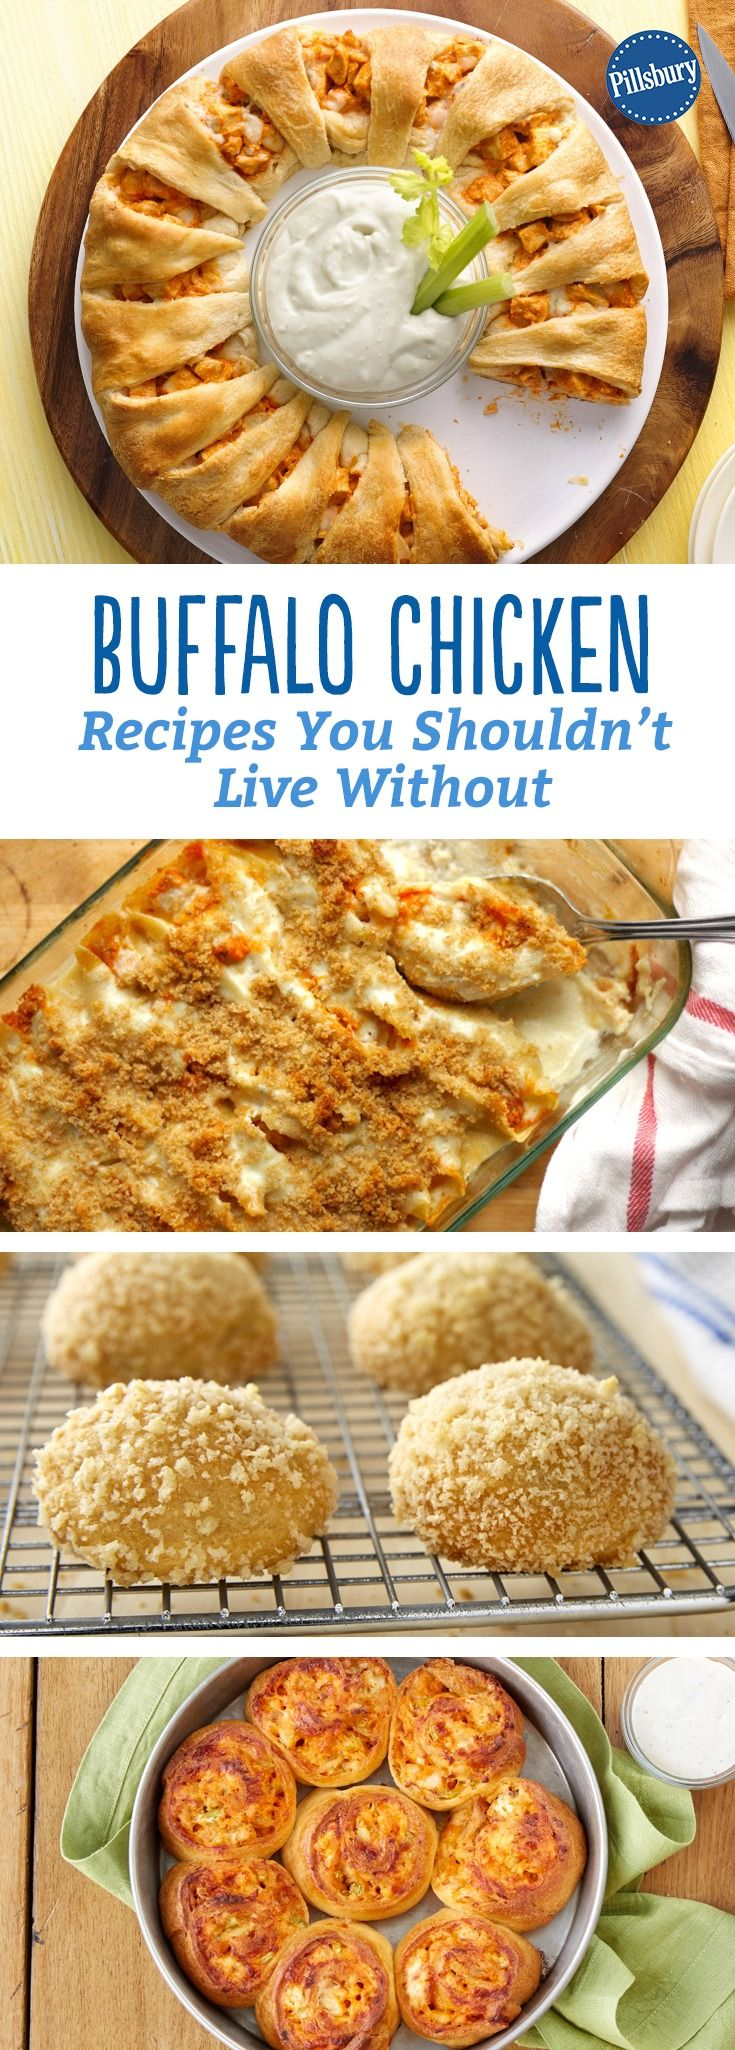 Buffalo Chicken Recipes You Shouldn't Live Without - This is way more than your standard chicken wing! We're spicing up snacks, apps and even dinner with everyone's favorite hot sauce. (Mexican Recipes Chicken)